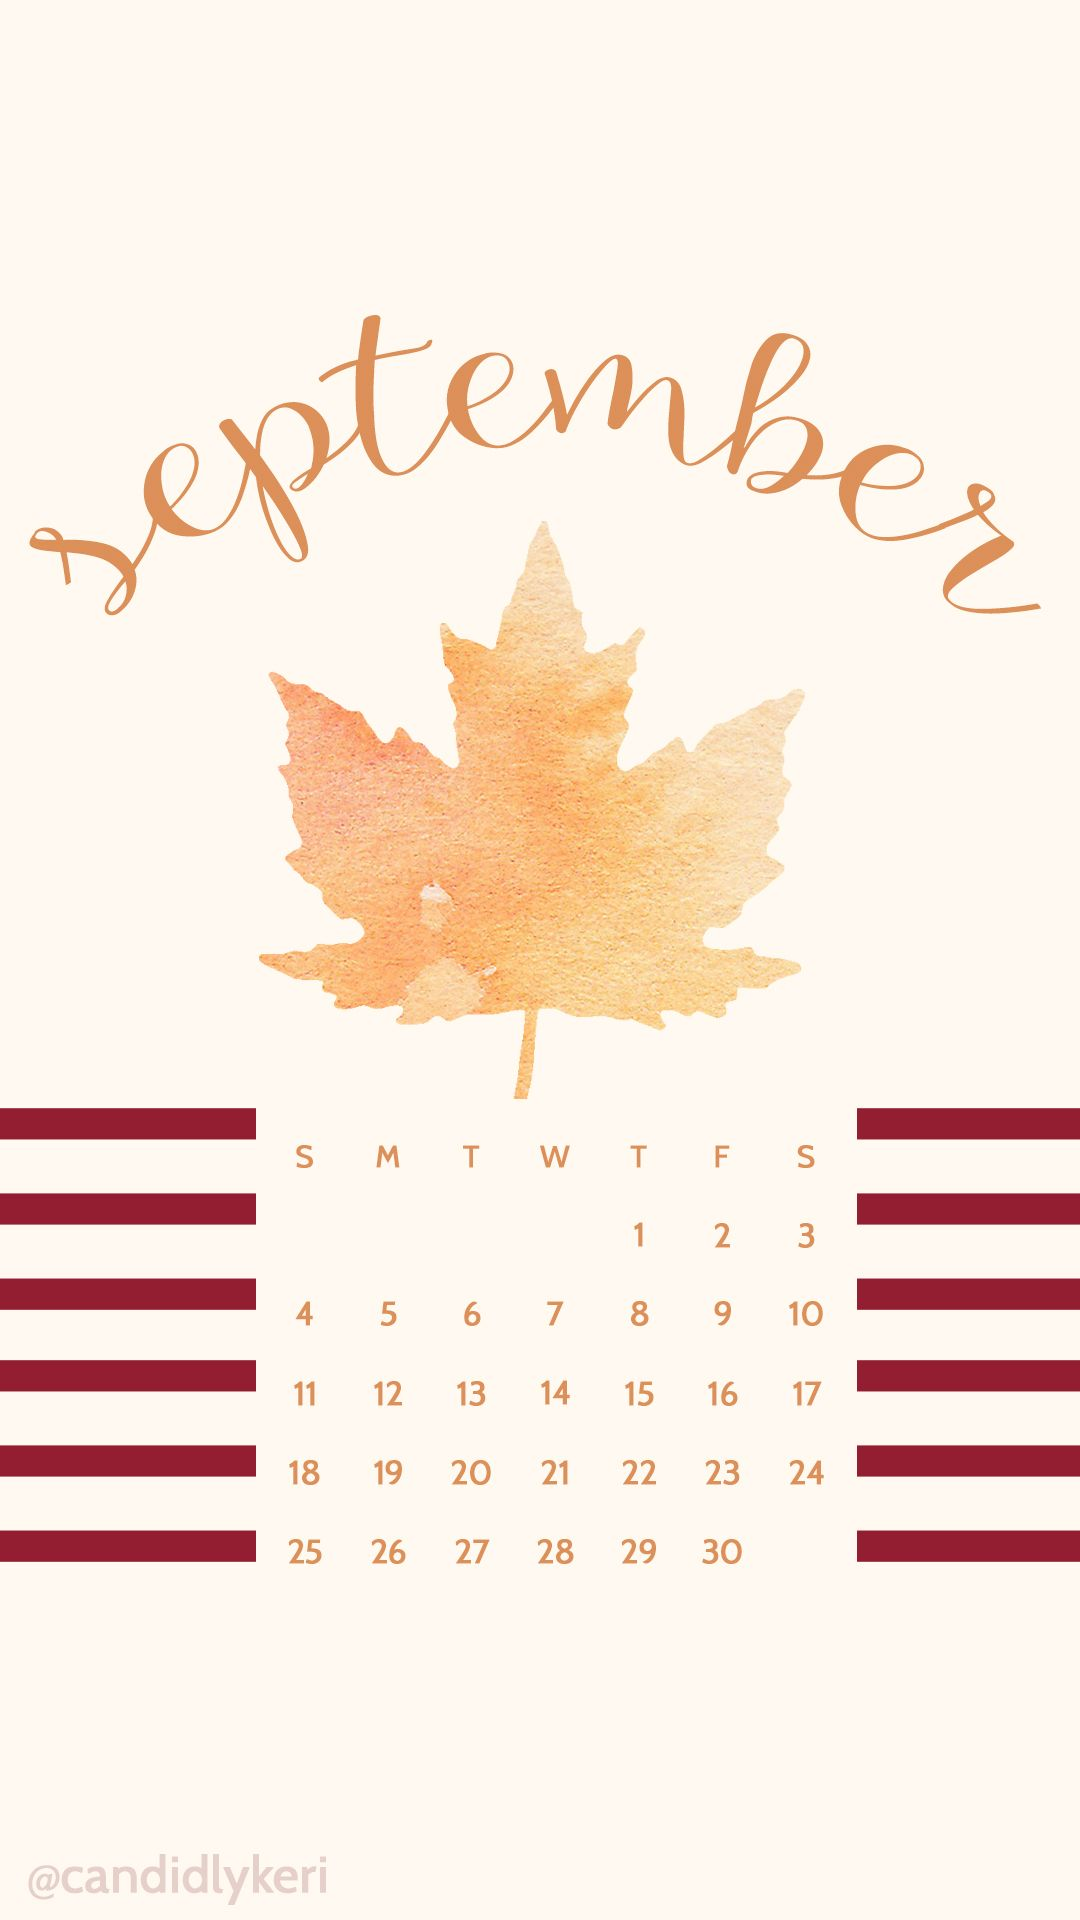 Free Calendar Wallpaper September : Fall leaf watercolor september calendar wallpaper you